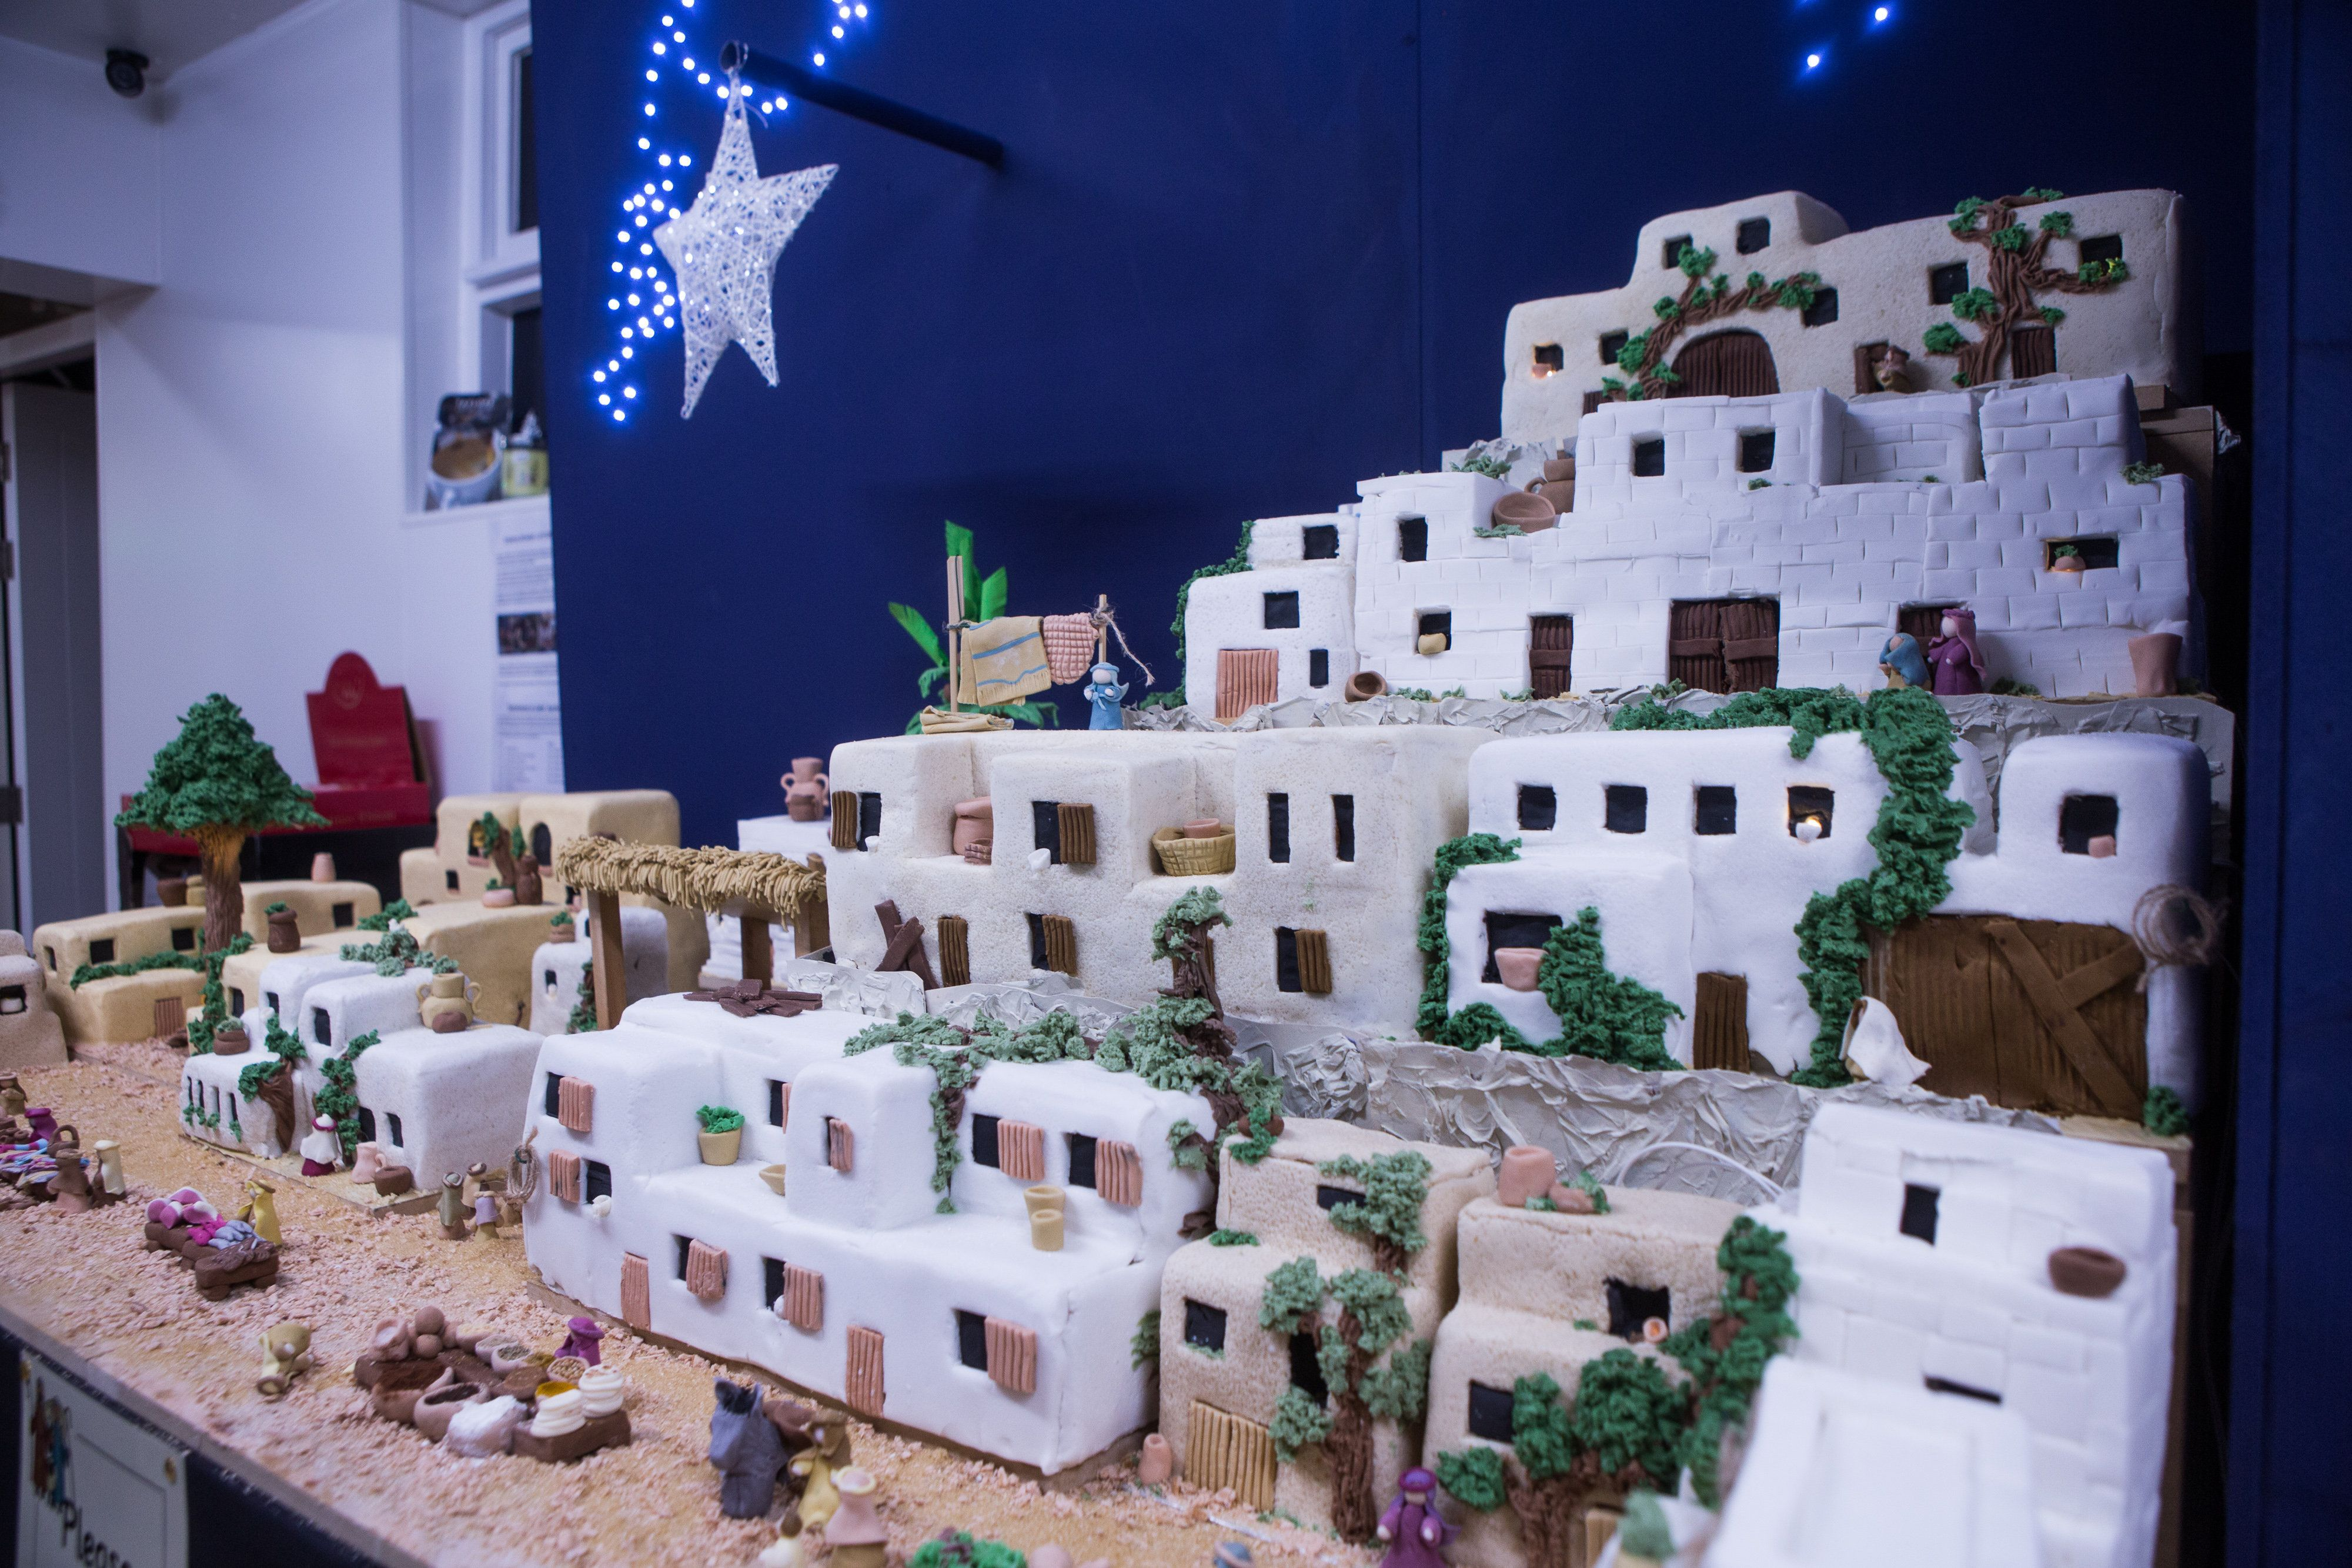 A giant nativity scene Christmas cake, comprising amongst other things, 110 pounds of marzipan, 1 gallon of whisky